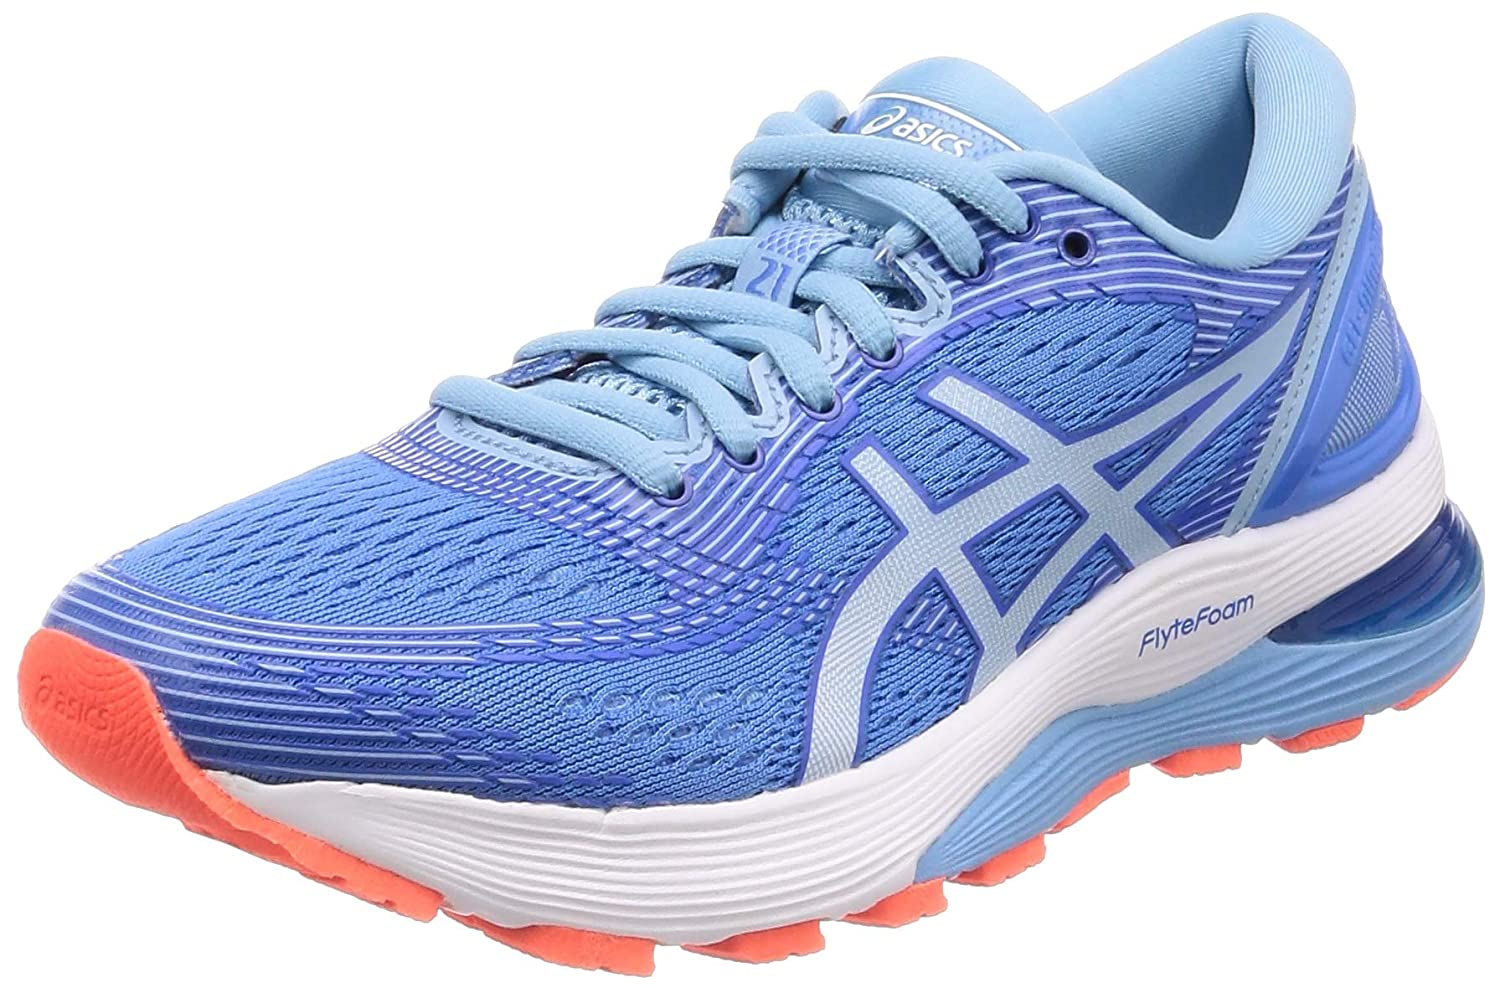 super popular 28b3f 90ed3 Amazon.com   ASICS Gel-Nimbus 21 Women s Running Shoes   Road Running